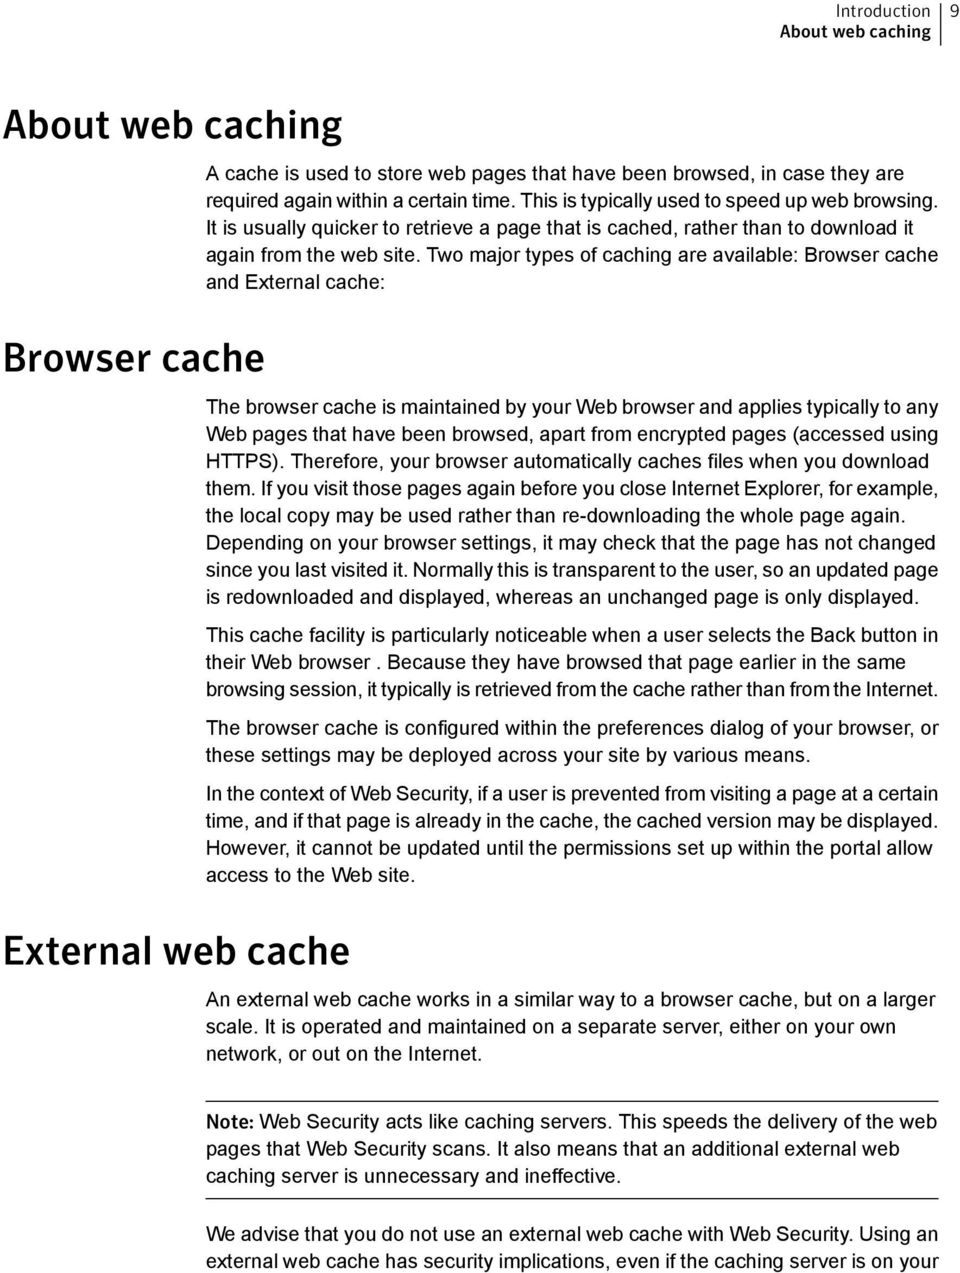 Two major types of caching are available: Browser cache and External cache: The browser cache is maintained by your Web browser and applies typically to any Web pages that have been browsed, apart